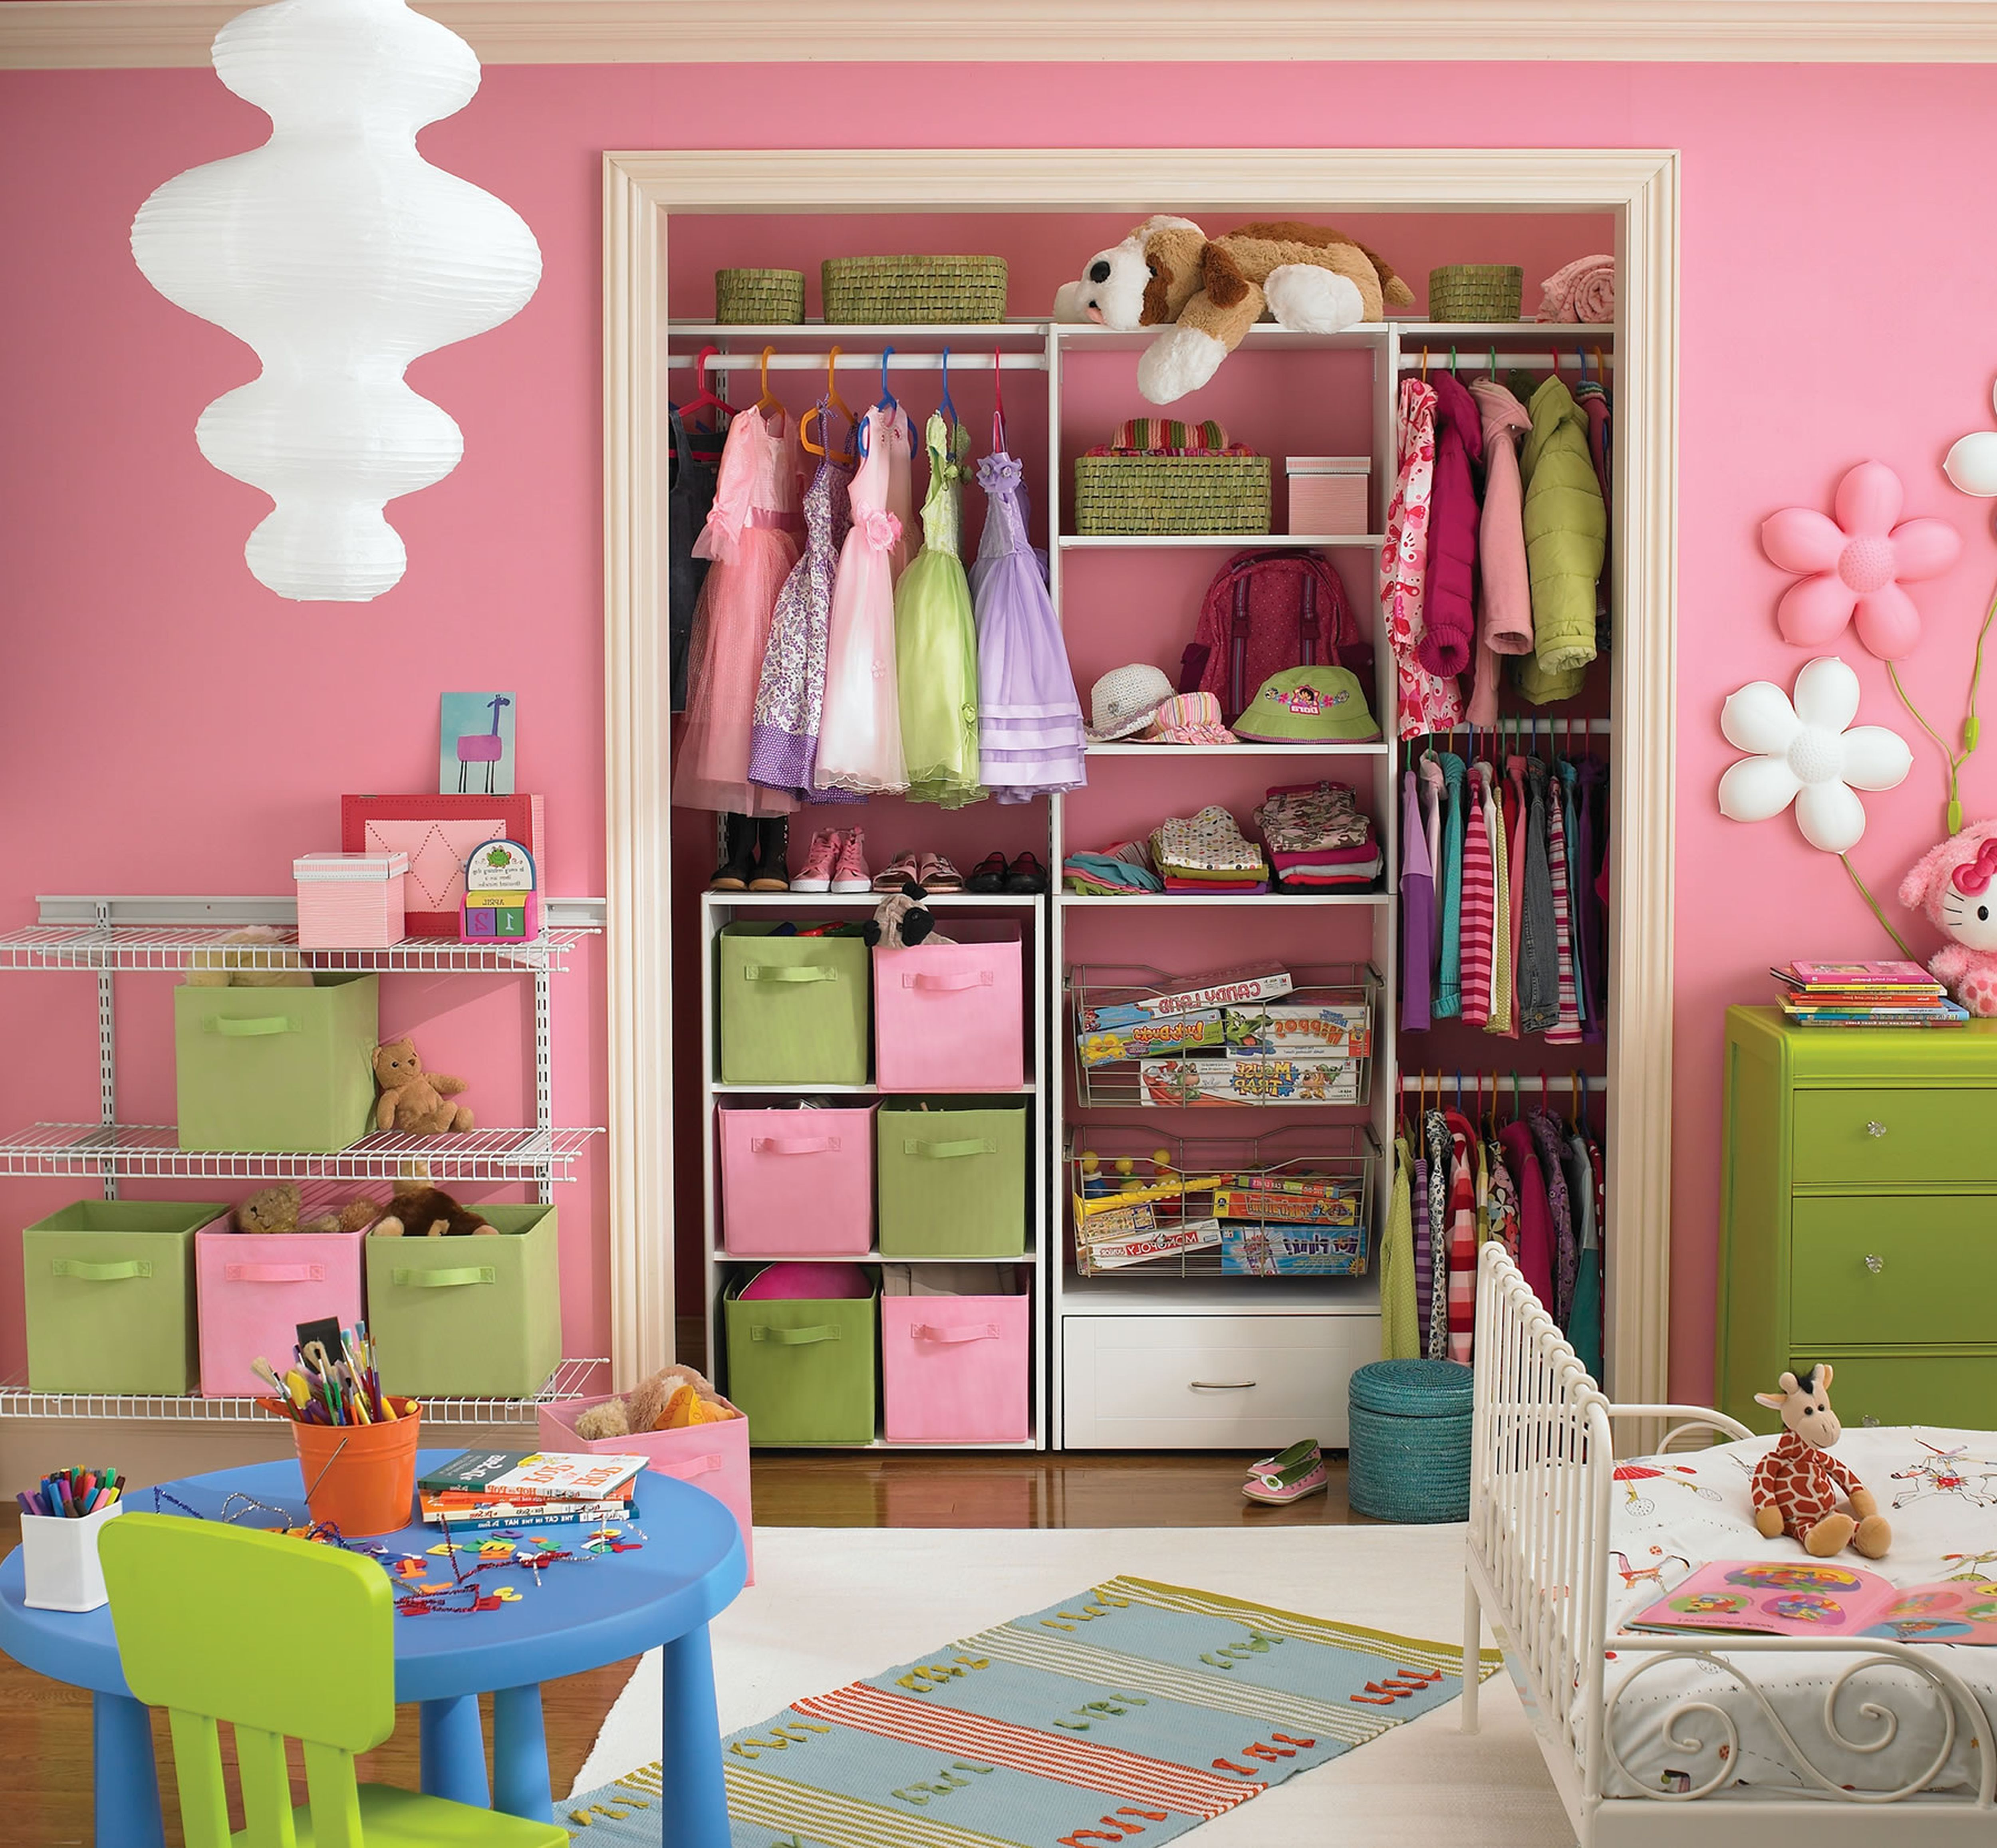 Charmant Small Closet Organization Ideas Bedroom Sweet Small Bedroom Design With  Pink Bright Accent And Lovely Closets